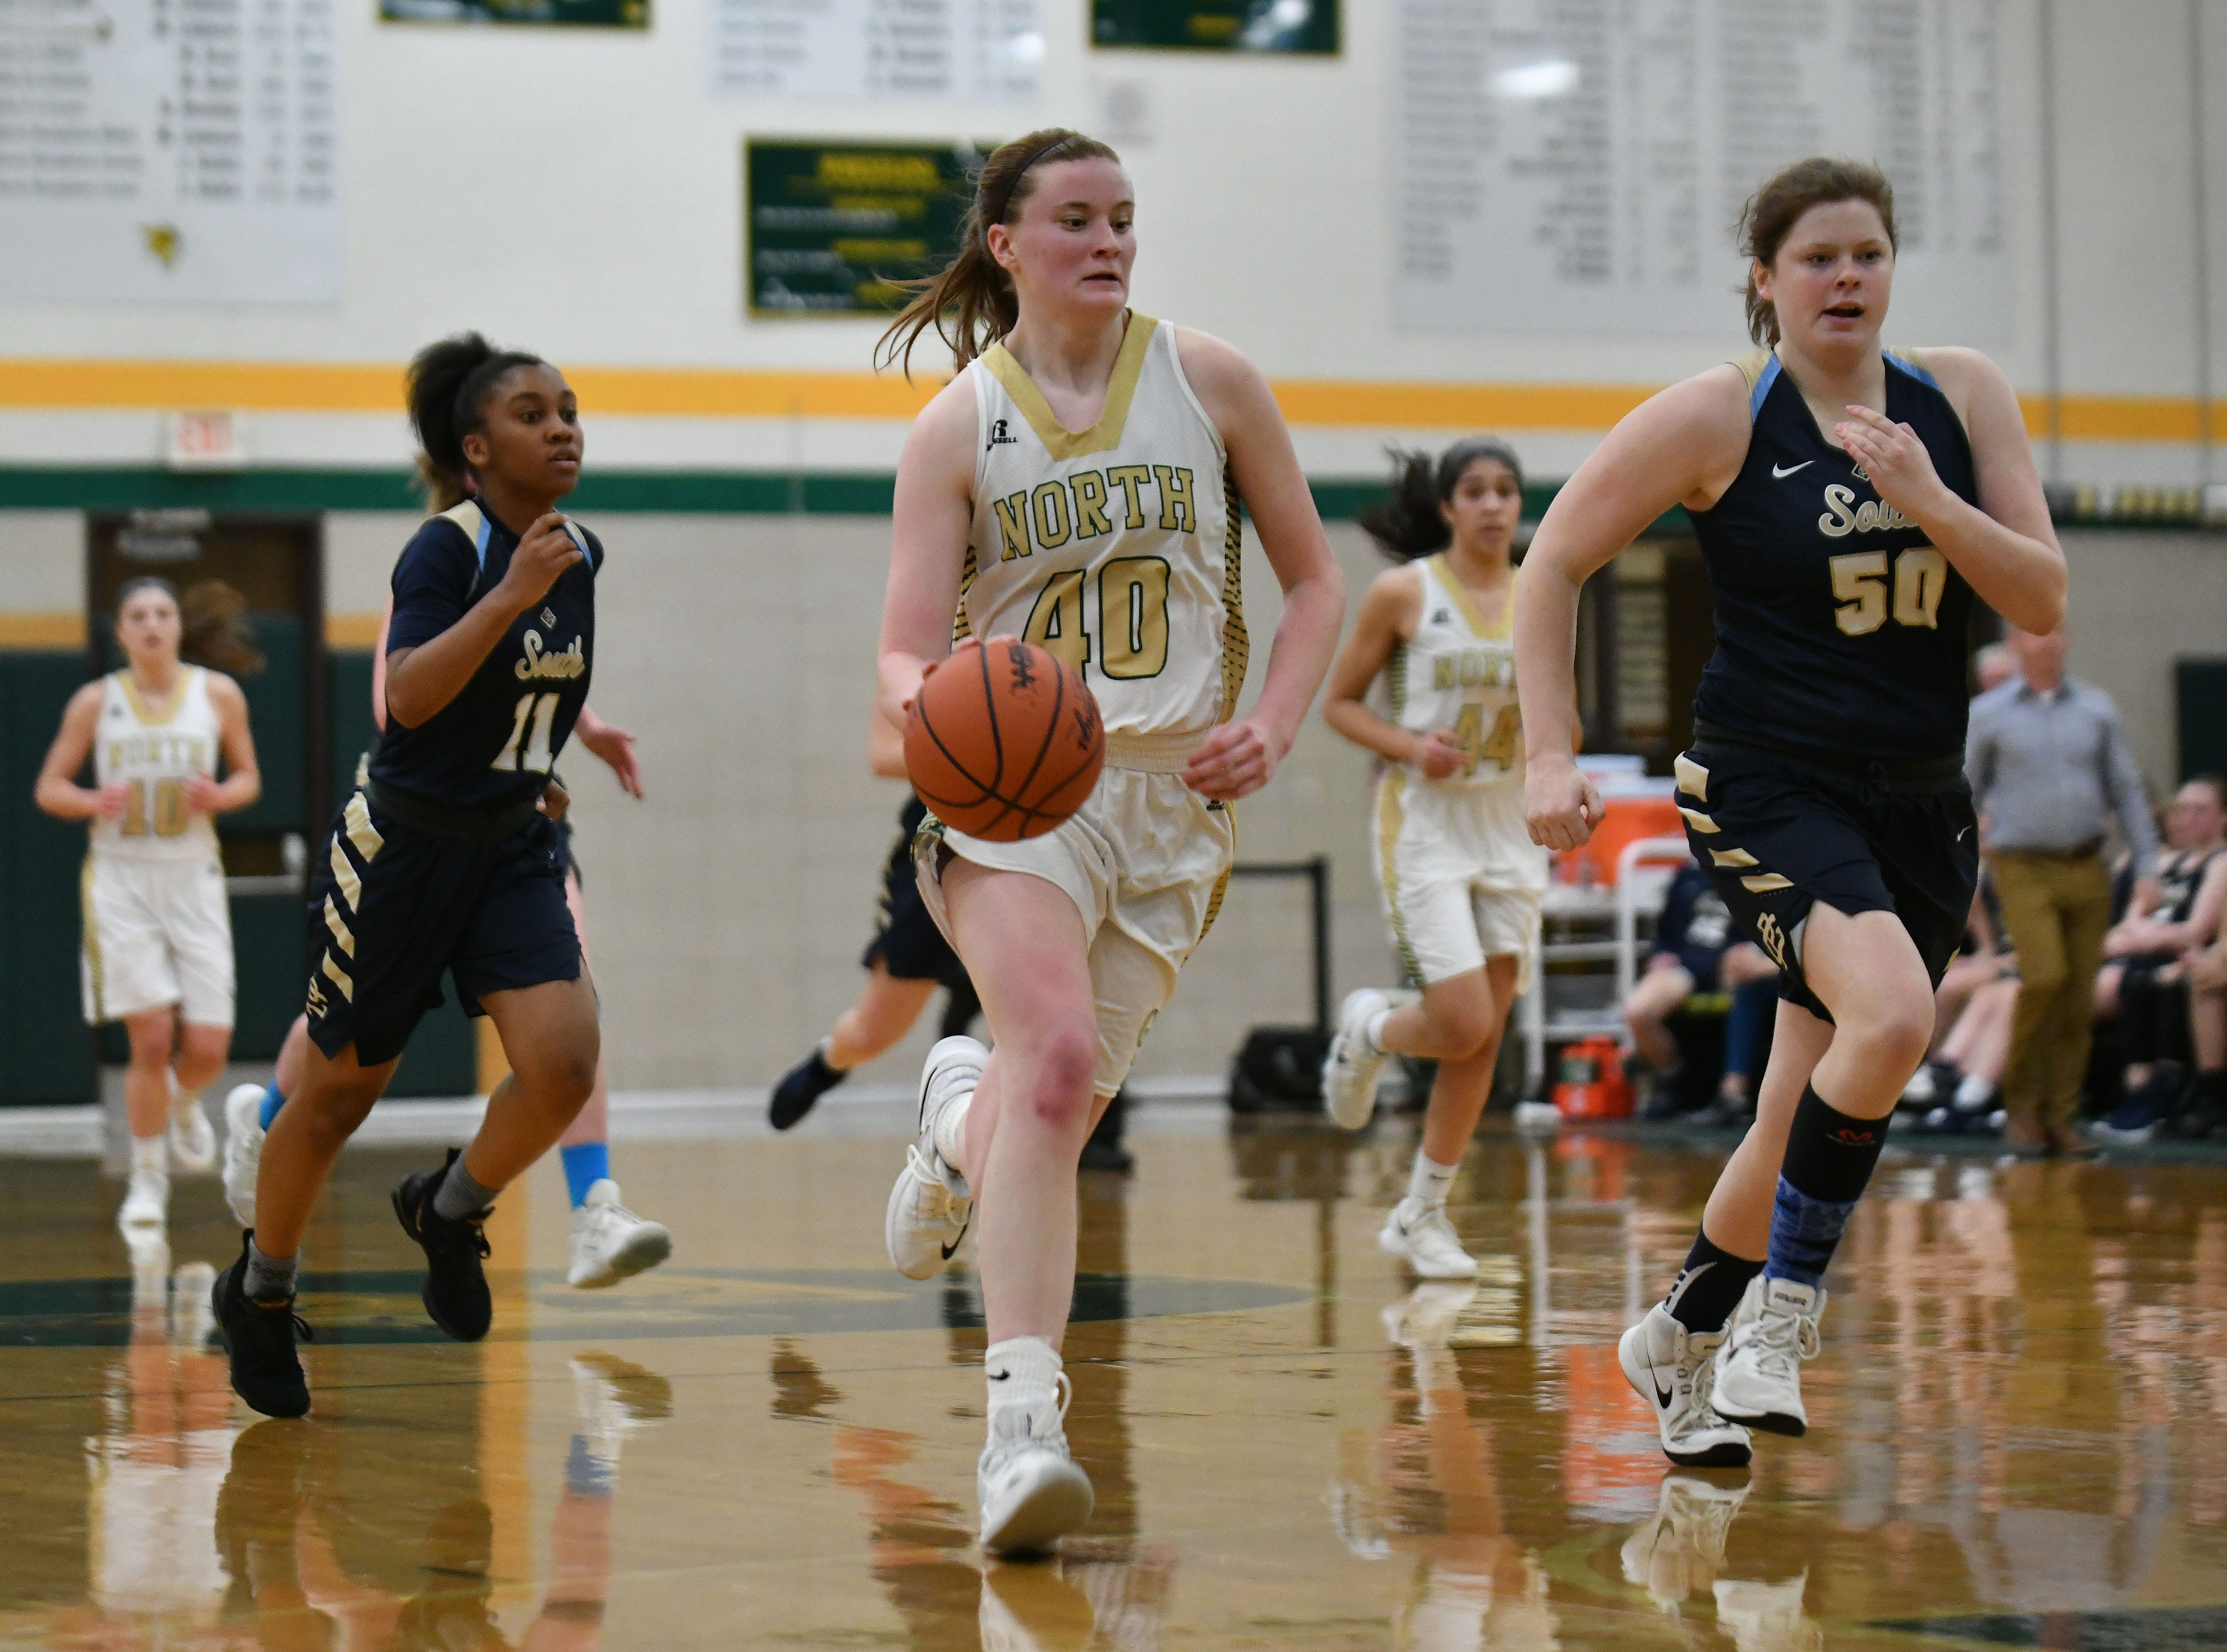 North senior Julia Ayrault dribbles up court in the second half.